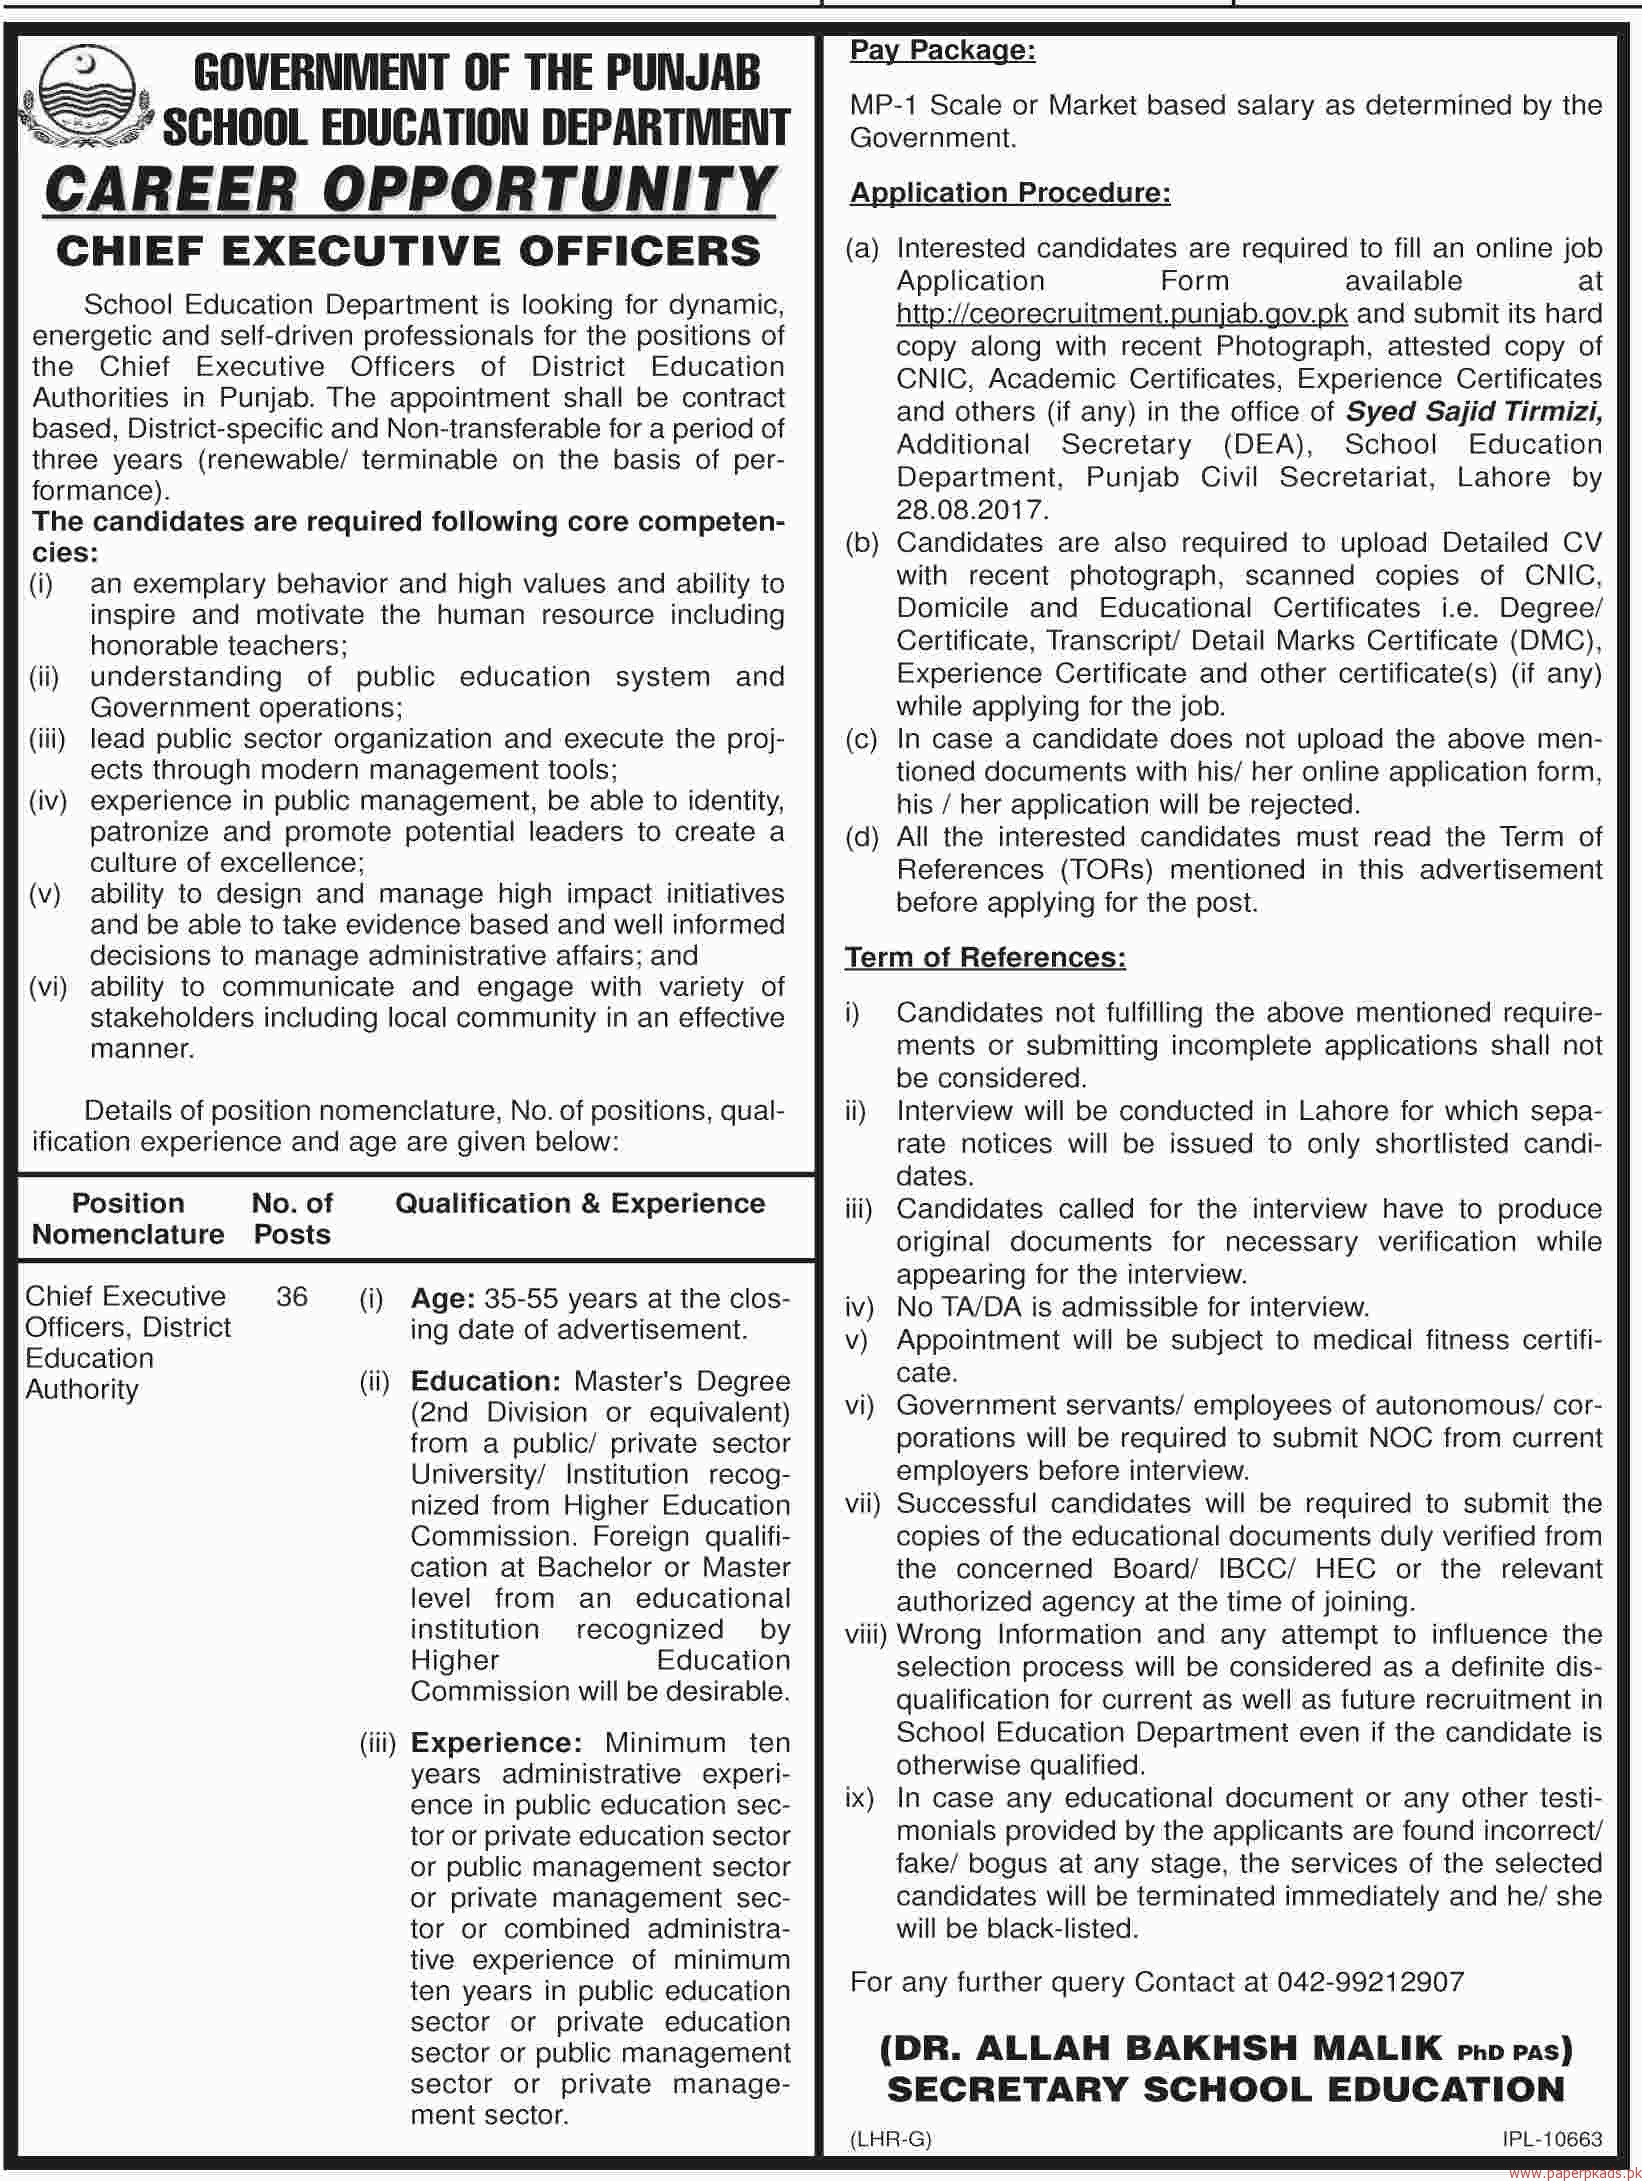 Government of the Punjab School Education Department Jobs 2017